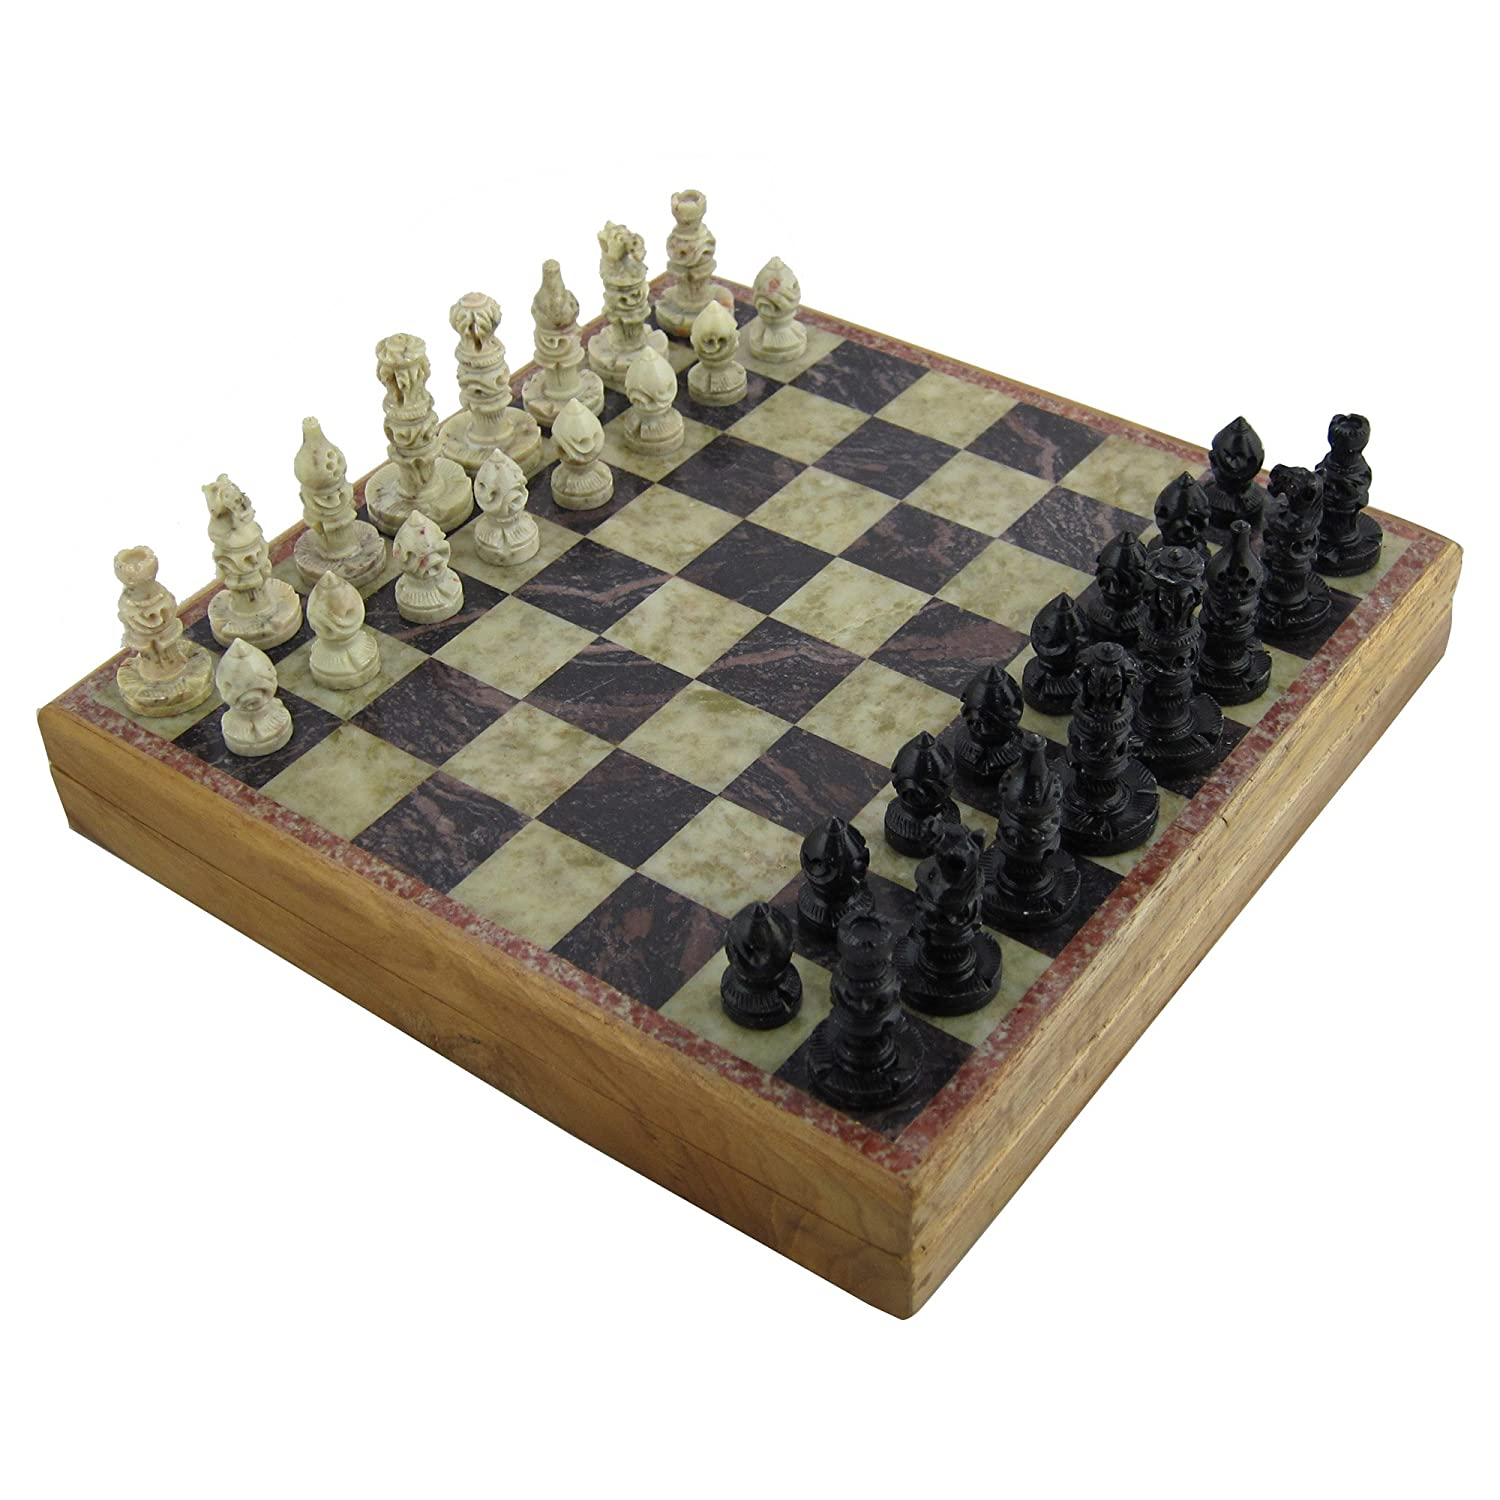 【即発送可能】 ShalinIndia Inch Rajasthan : Stone Art Unique Chess Sets and Board Inch -Indian Handmade Unique Gifts -Size 16X16 Inches B0078YDPF8 Size : 14X14 Inch Size : 14X14 Inch, interzoo clinicclub:5bda9c6c --- arianechie.dominiotemporario.com